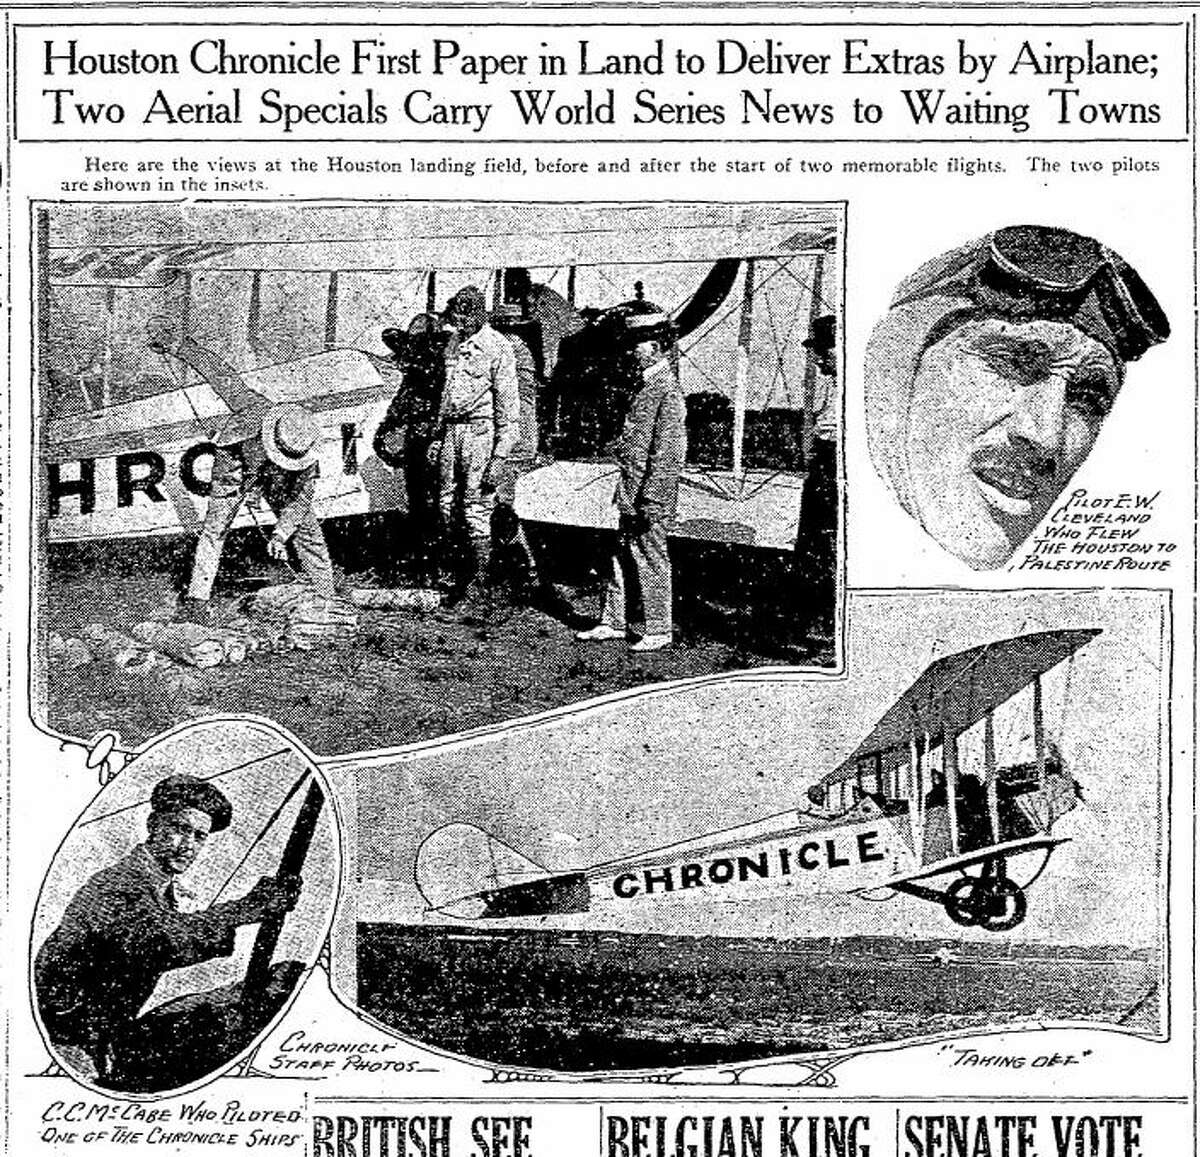 From the Houston Chronicle's front page on Oct. 2, 1919.